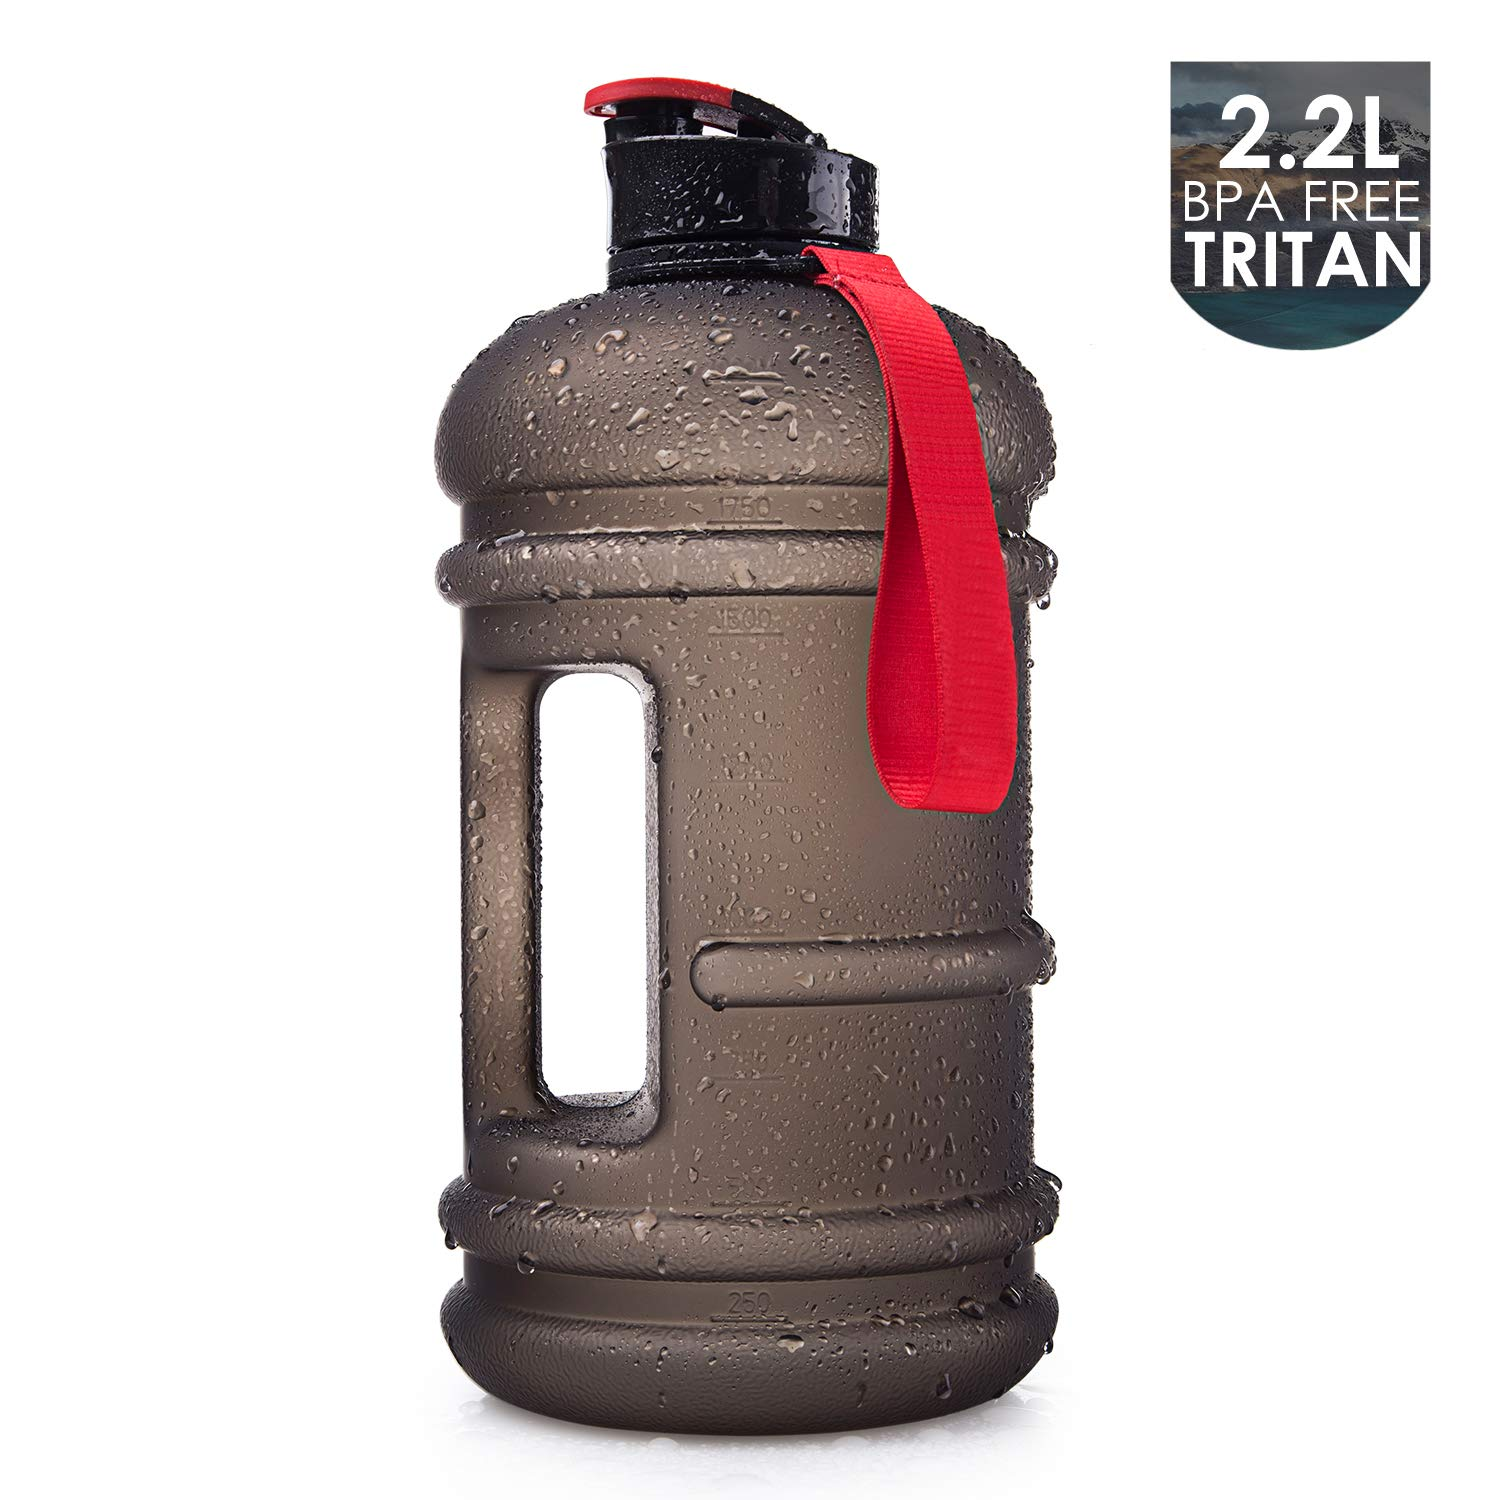 2.2l dishwashersafe frosted ASH BLACK 75oz Moonice Half Gallon Dishwasher Safe 2.2l Litre and 1.3l Big Capacity BPA Free Leakproof Plastic Gym Sports Water Bottle Large Drinking Water Jug Hydrate Container